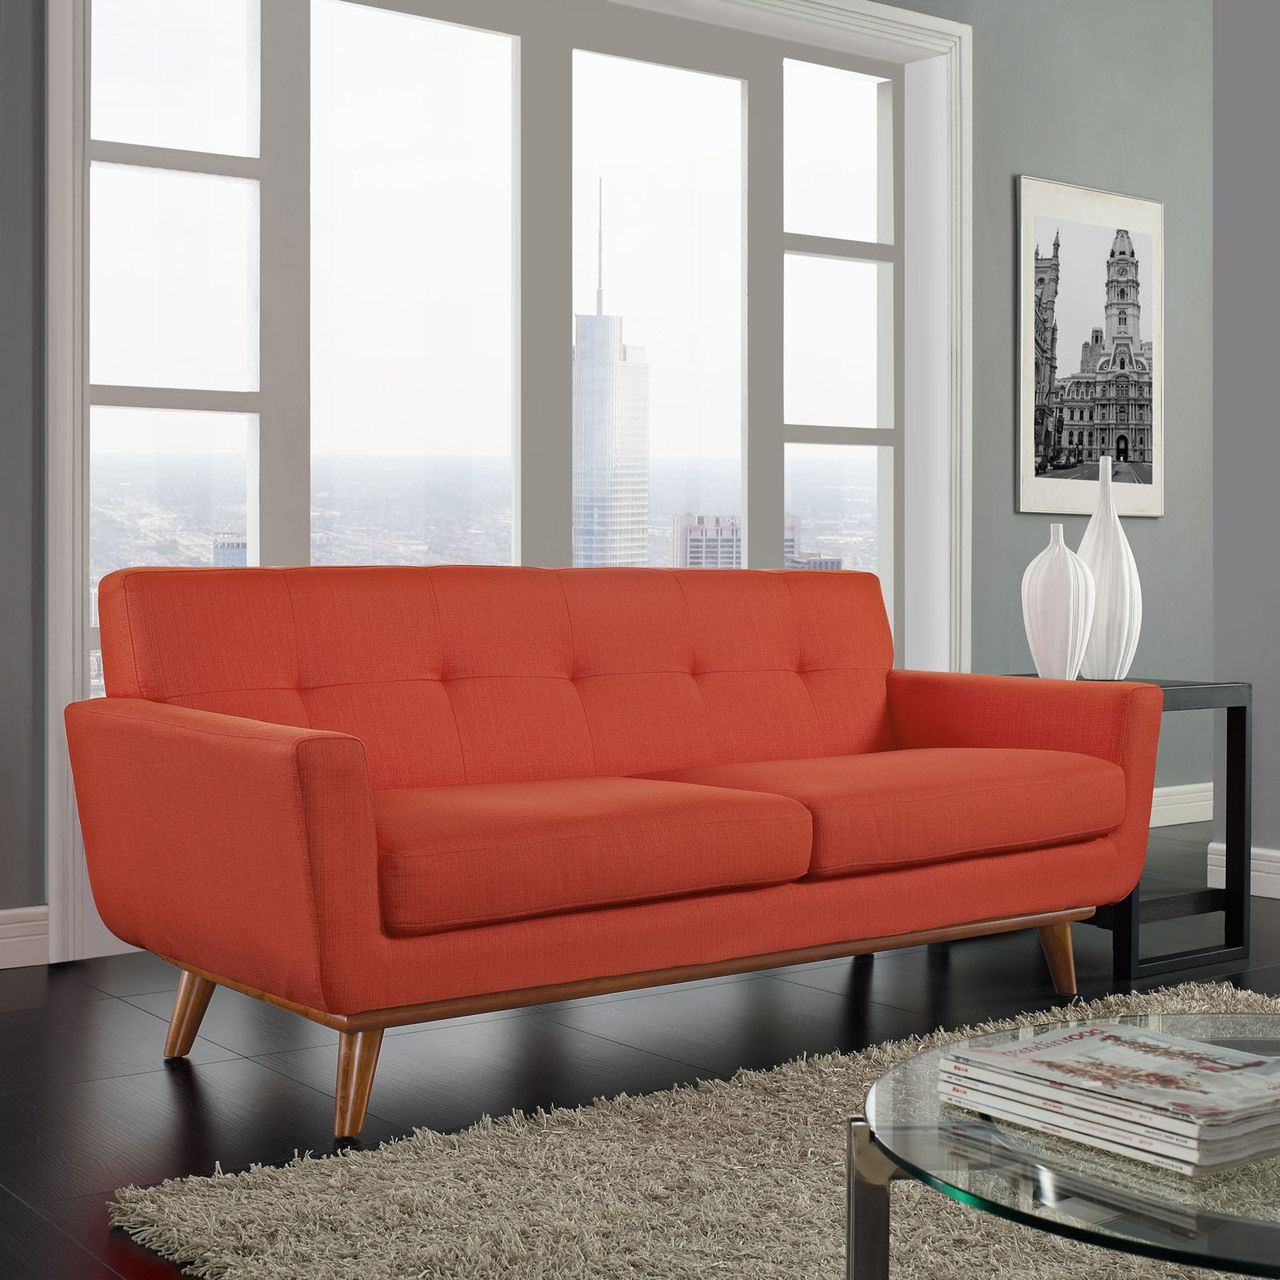 Modern Chic Red Couch Take A Look At This Elegant Living Room Sofa It Is Inspired By Scandinavian Design And Unlike What You May Think It Is Incred Con Immagini Arredamento